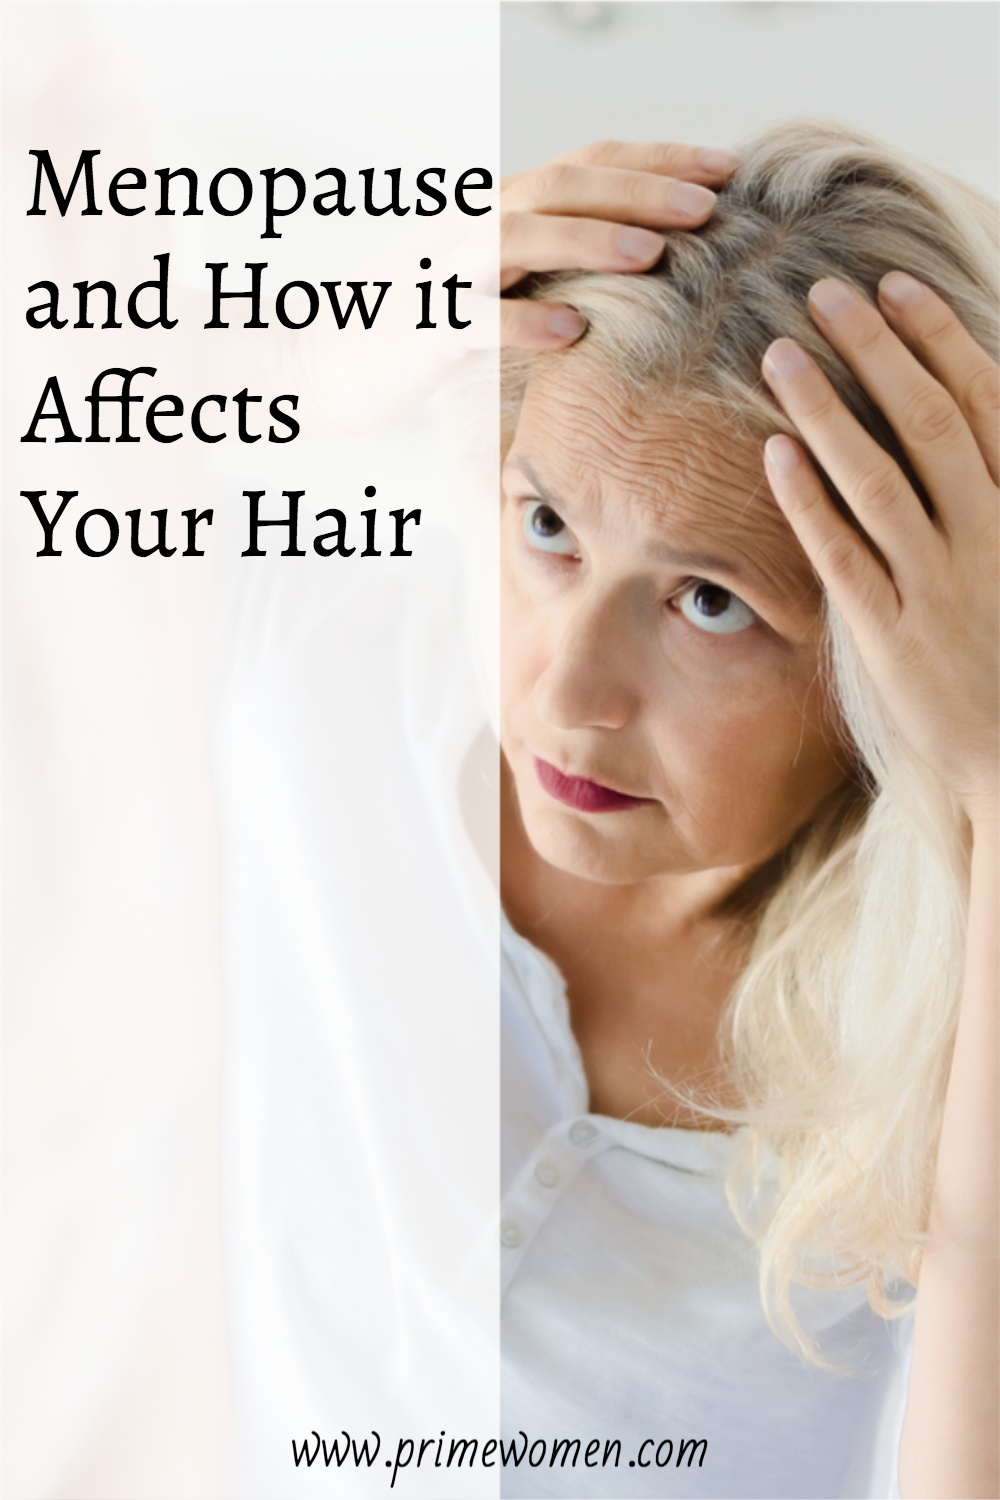 How menopause affects your hair and what you can do about it